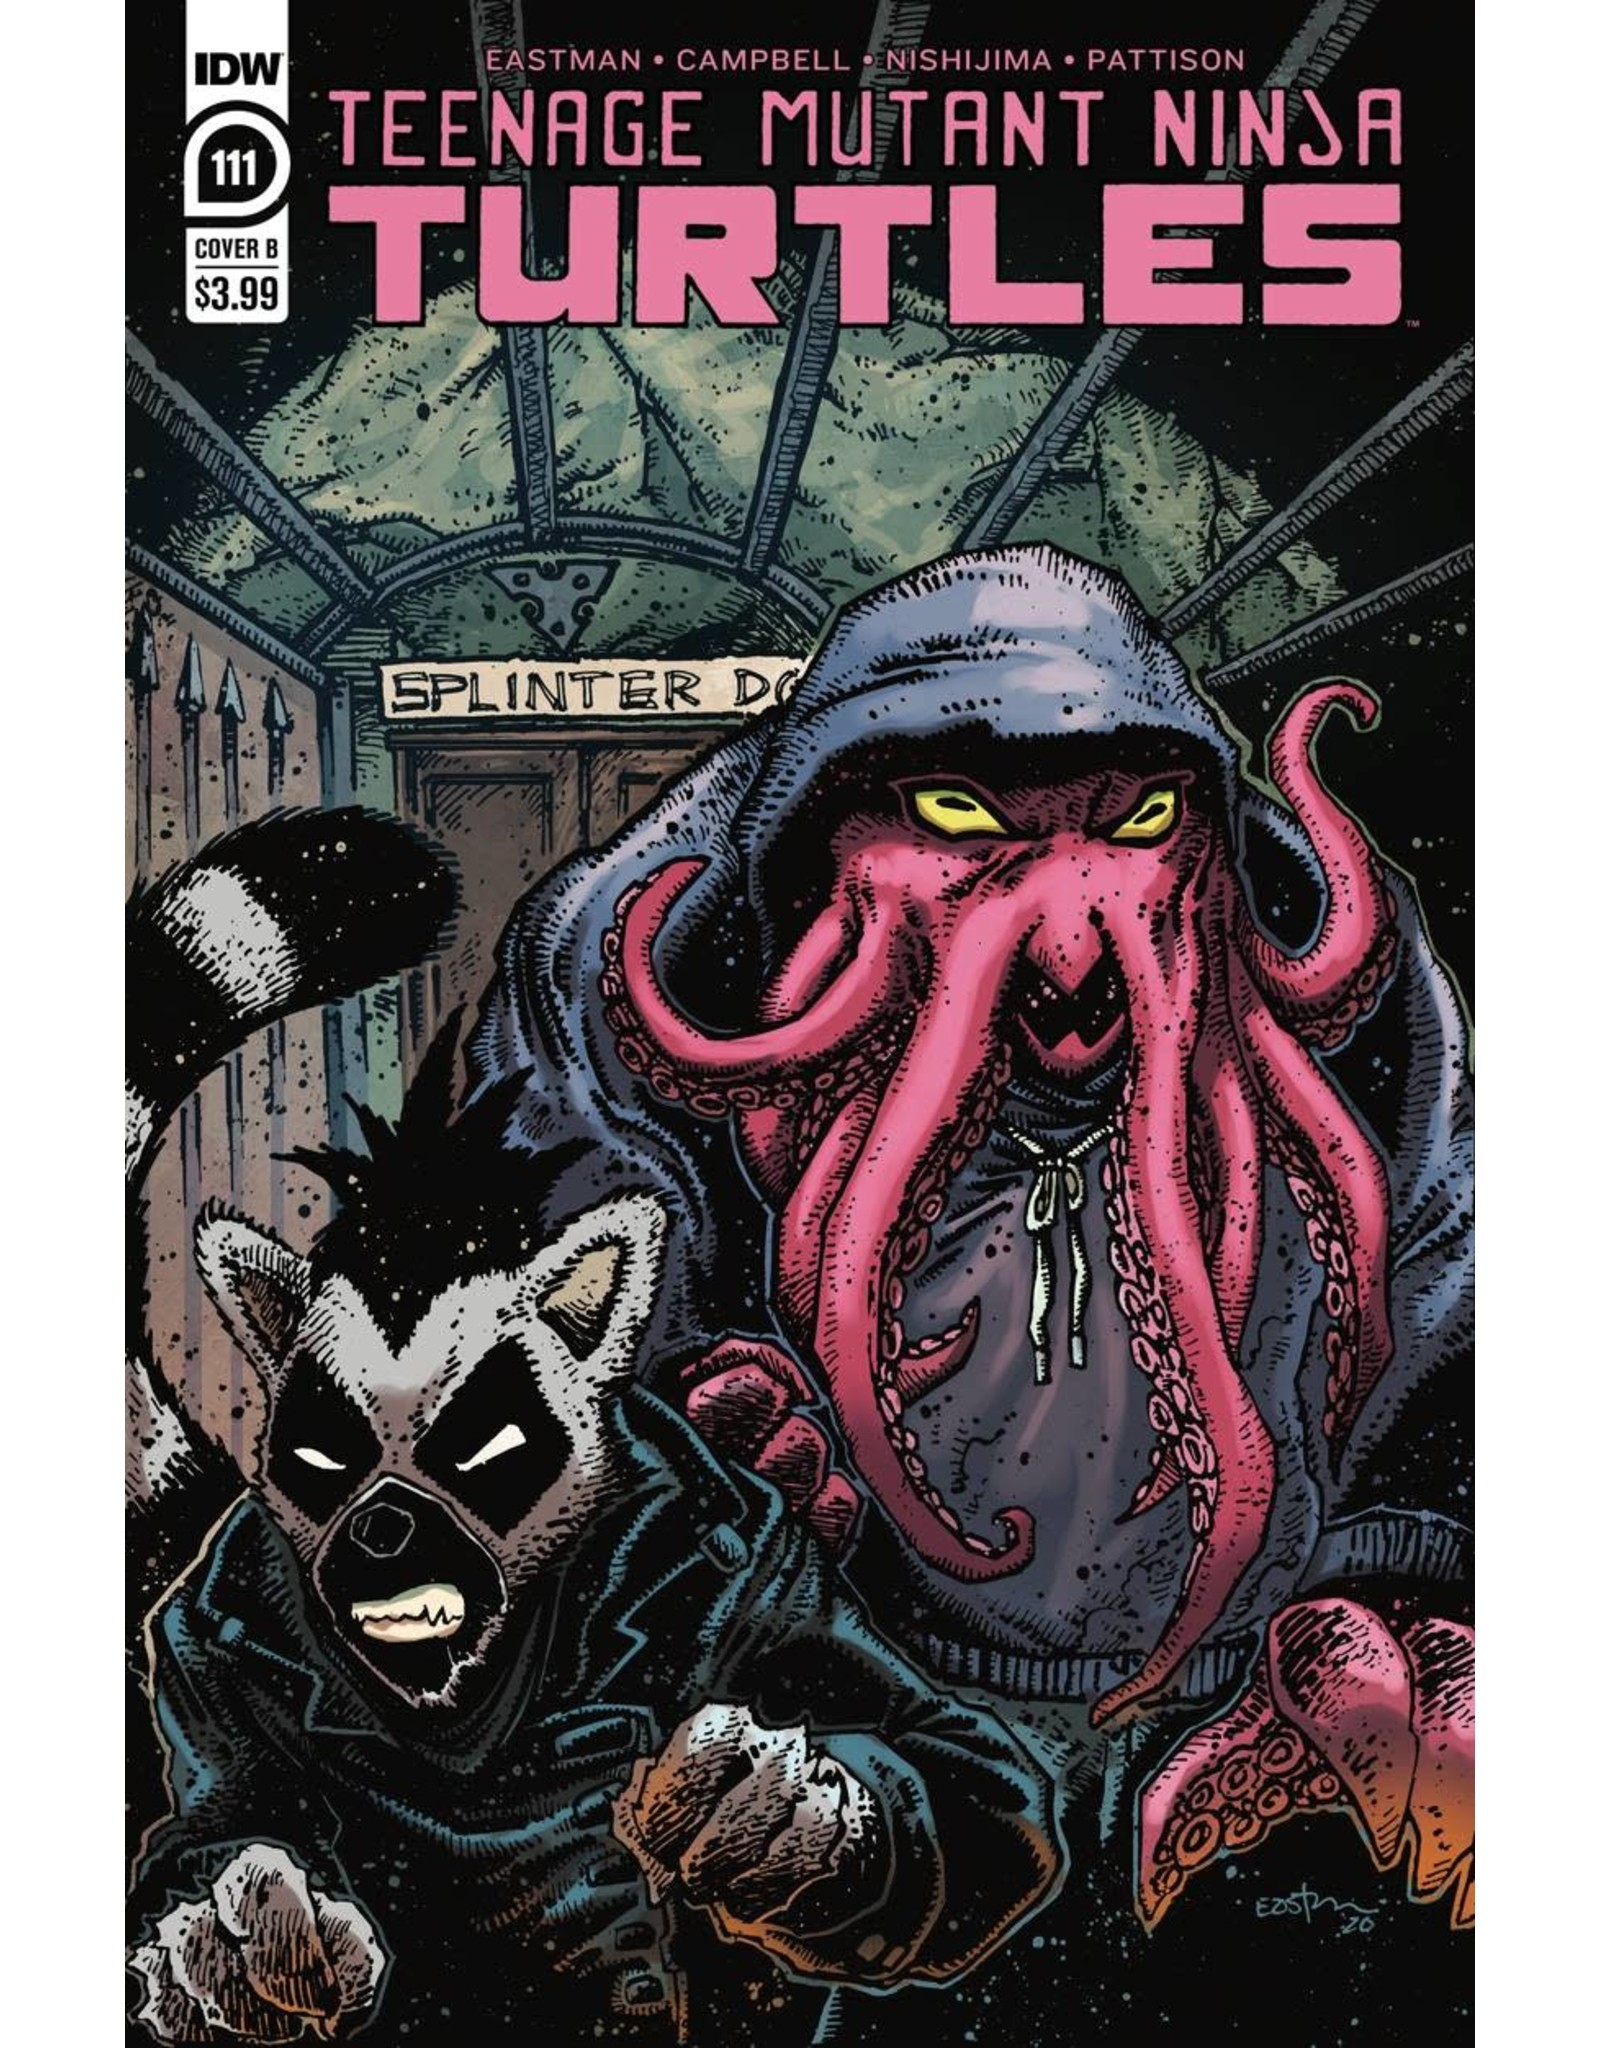 IDW PUBLISHING TMNT ONGOING #111 CVR B EASTMAN